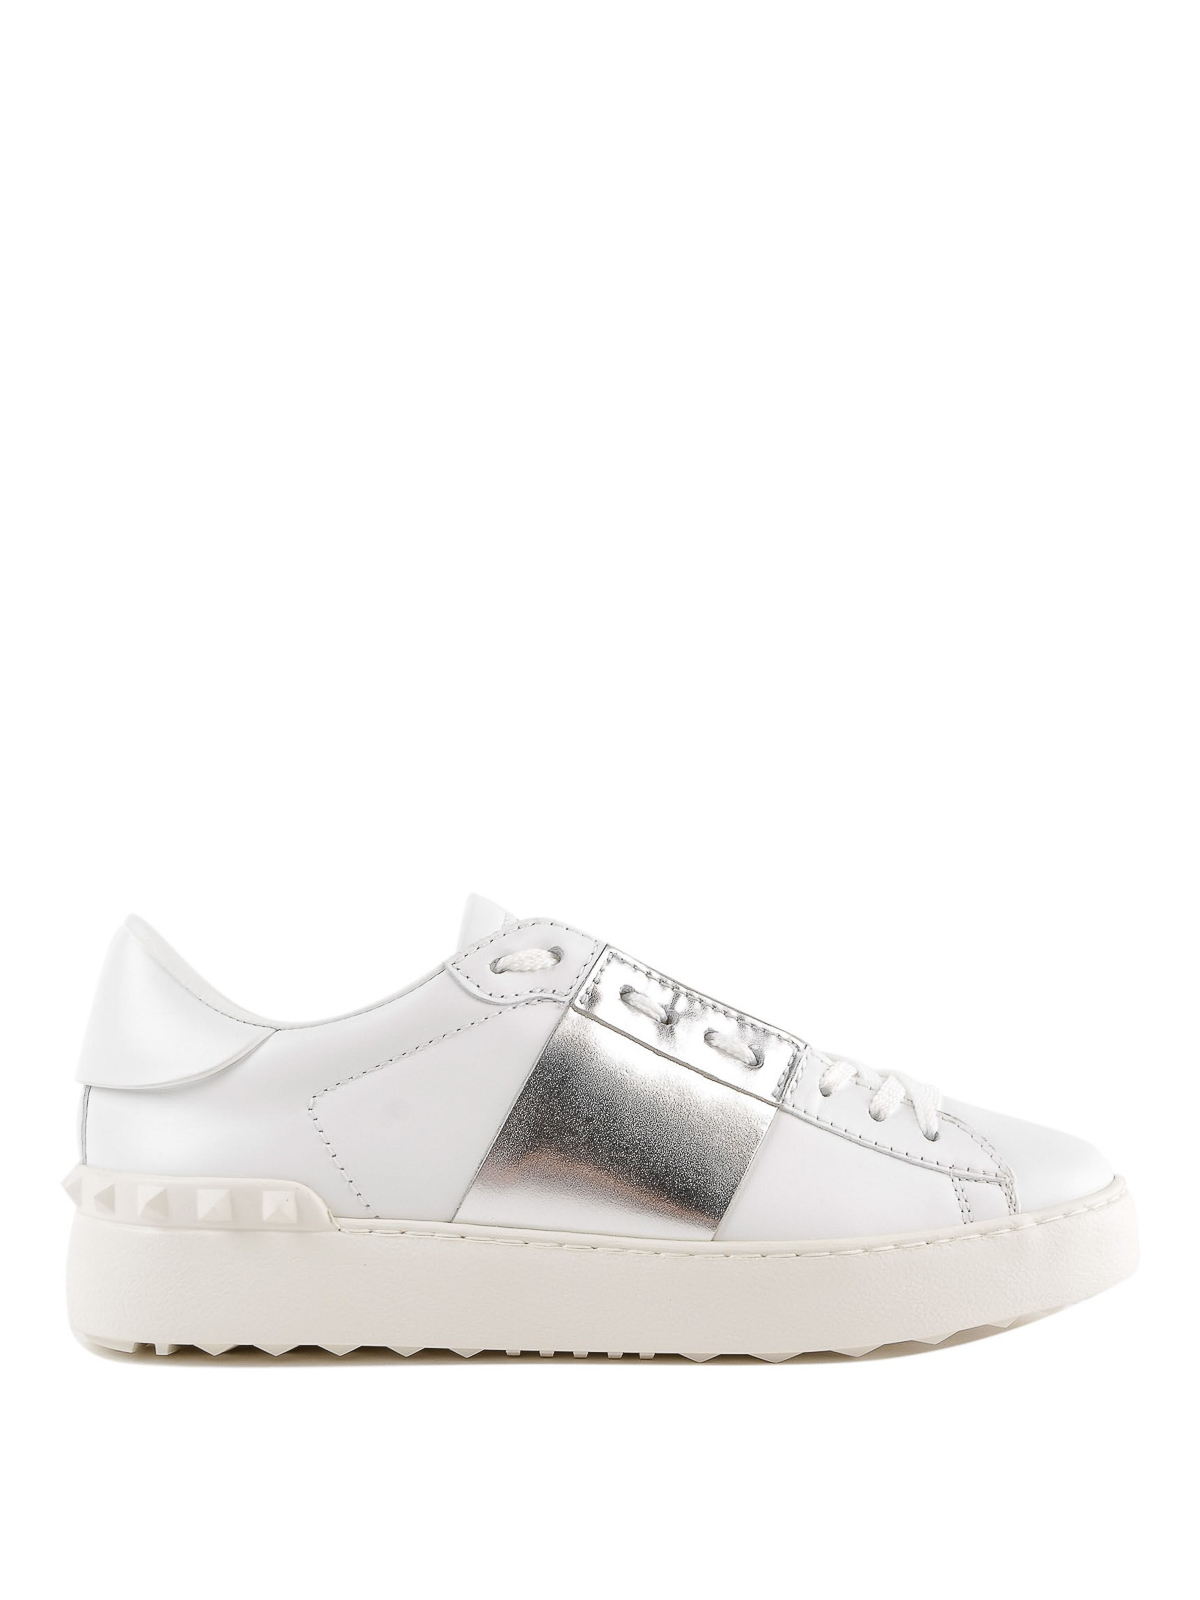 Open white sneakers with silver-tone